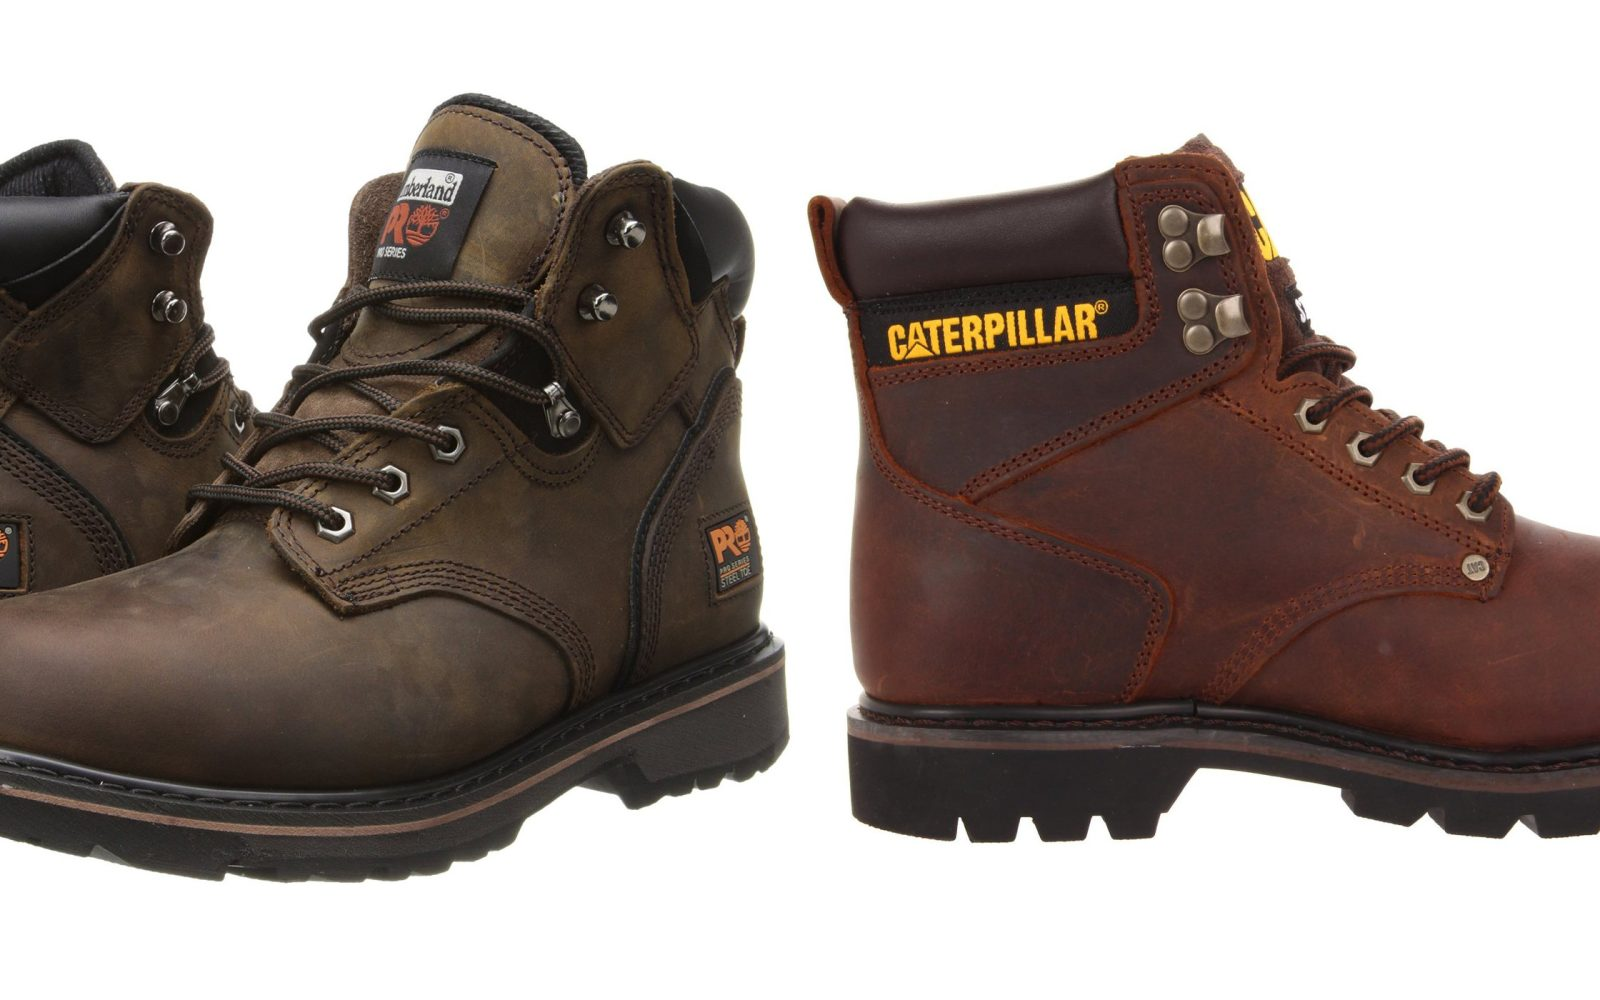 369ead2225f Amazon offers up to 40% off work/safety boots & shoes from $24 ...